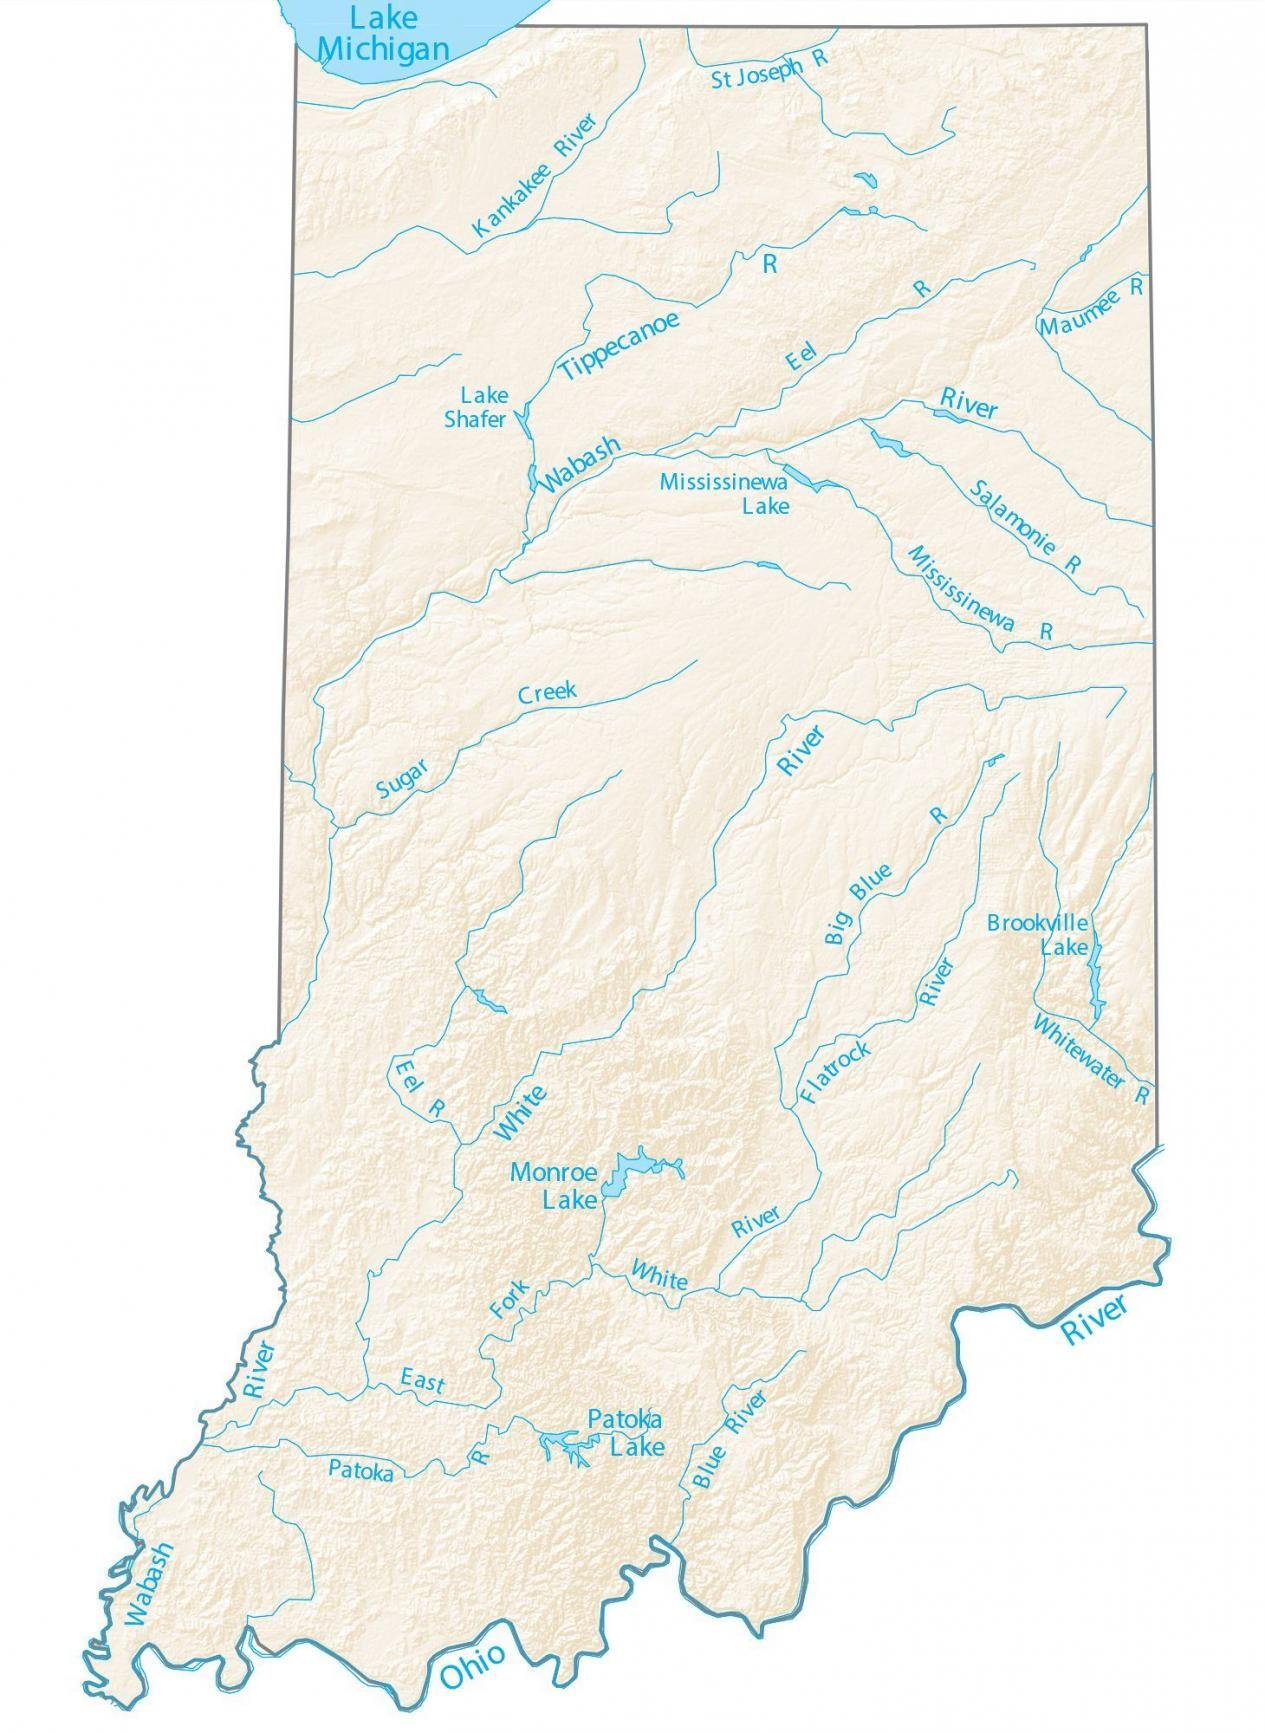 Indiana Lakes and Rivers Map